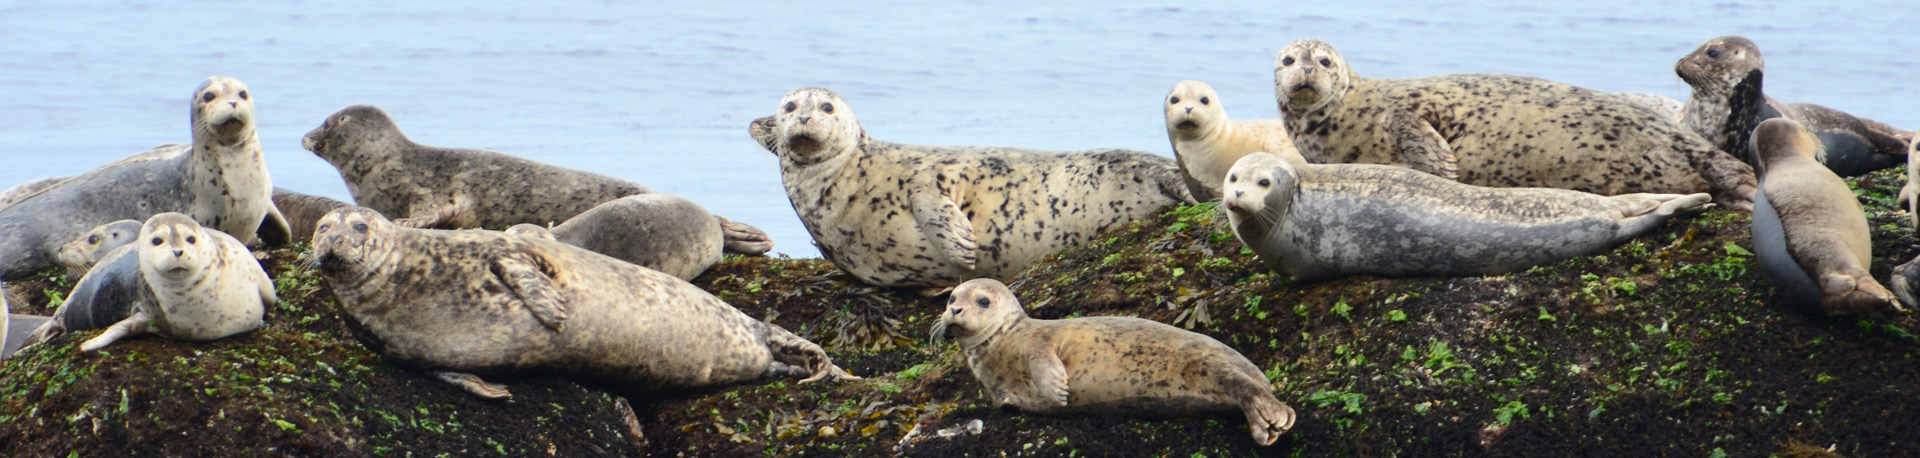 Several seals stretched out on a rock watching the camera